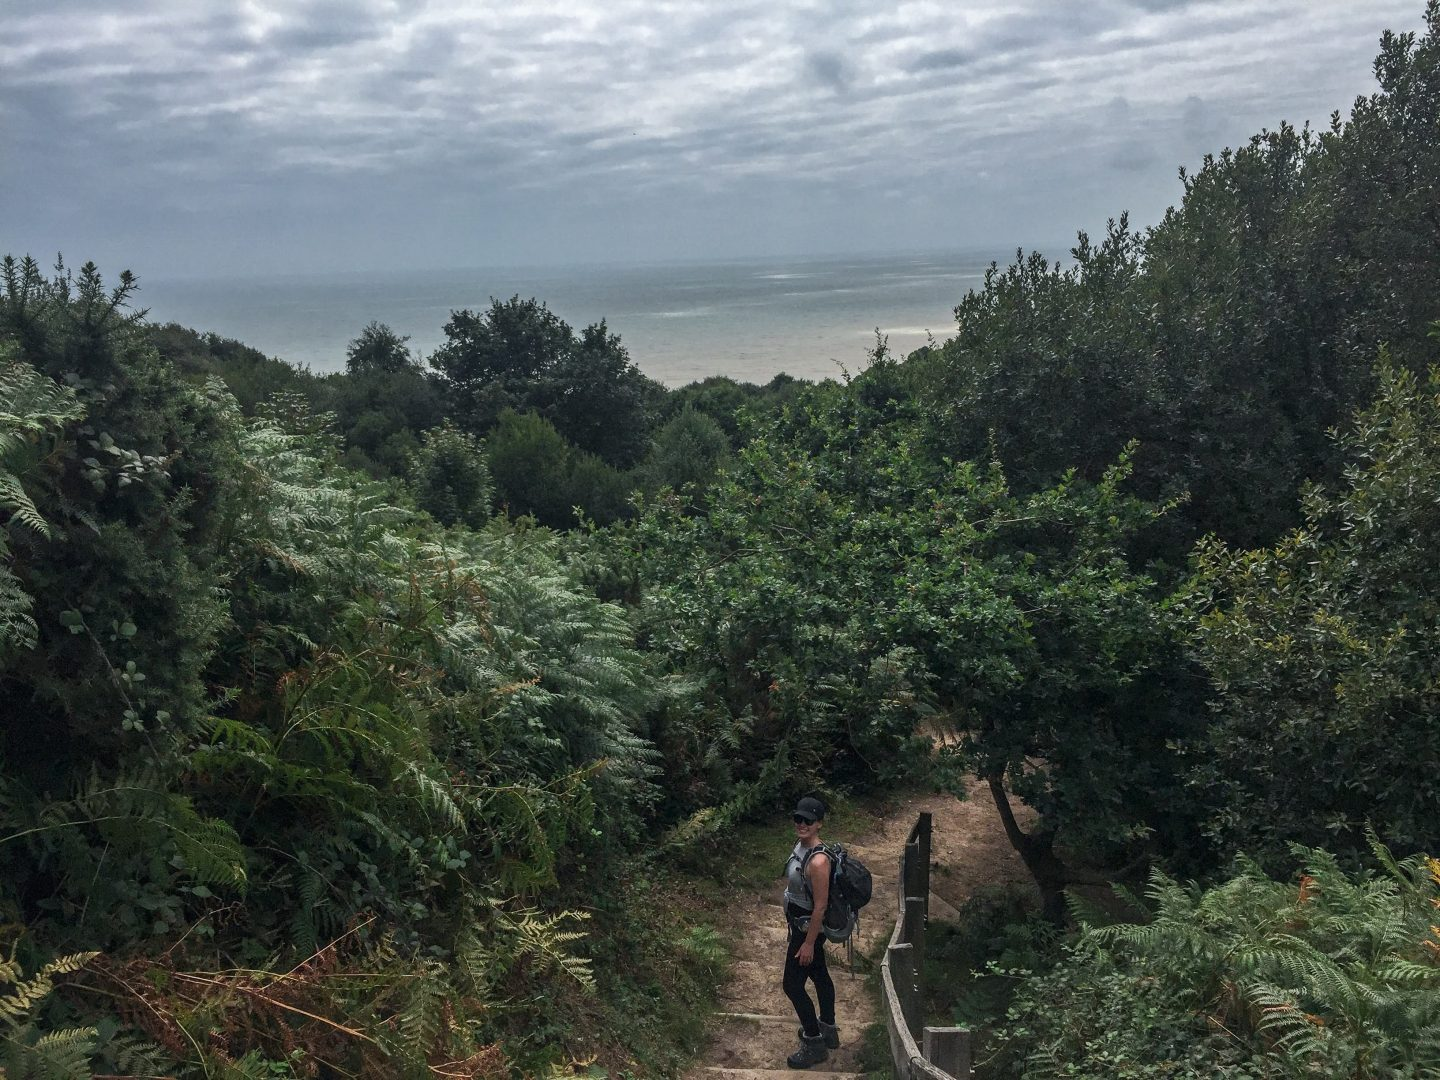 Hiking from Winchelsea to Hastings